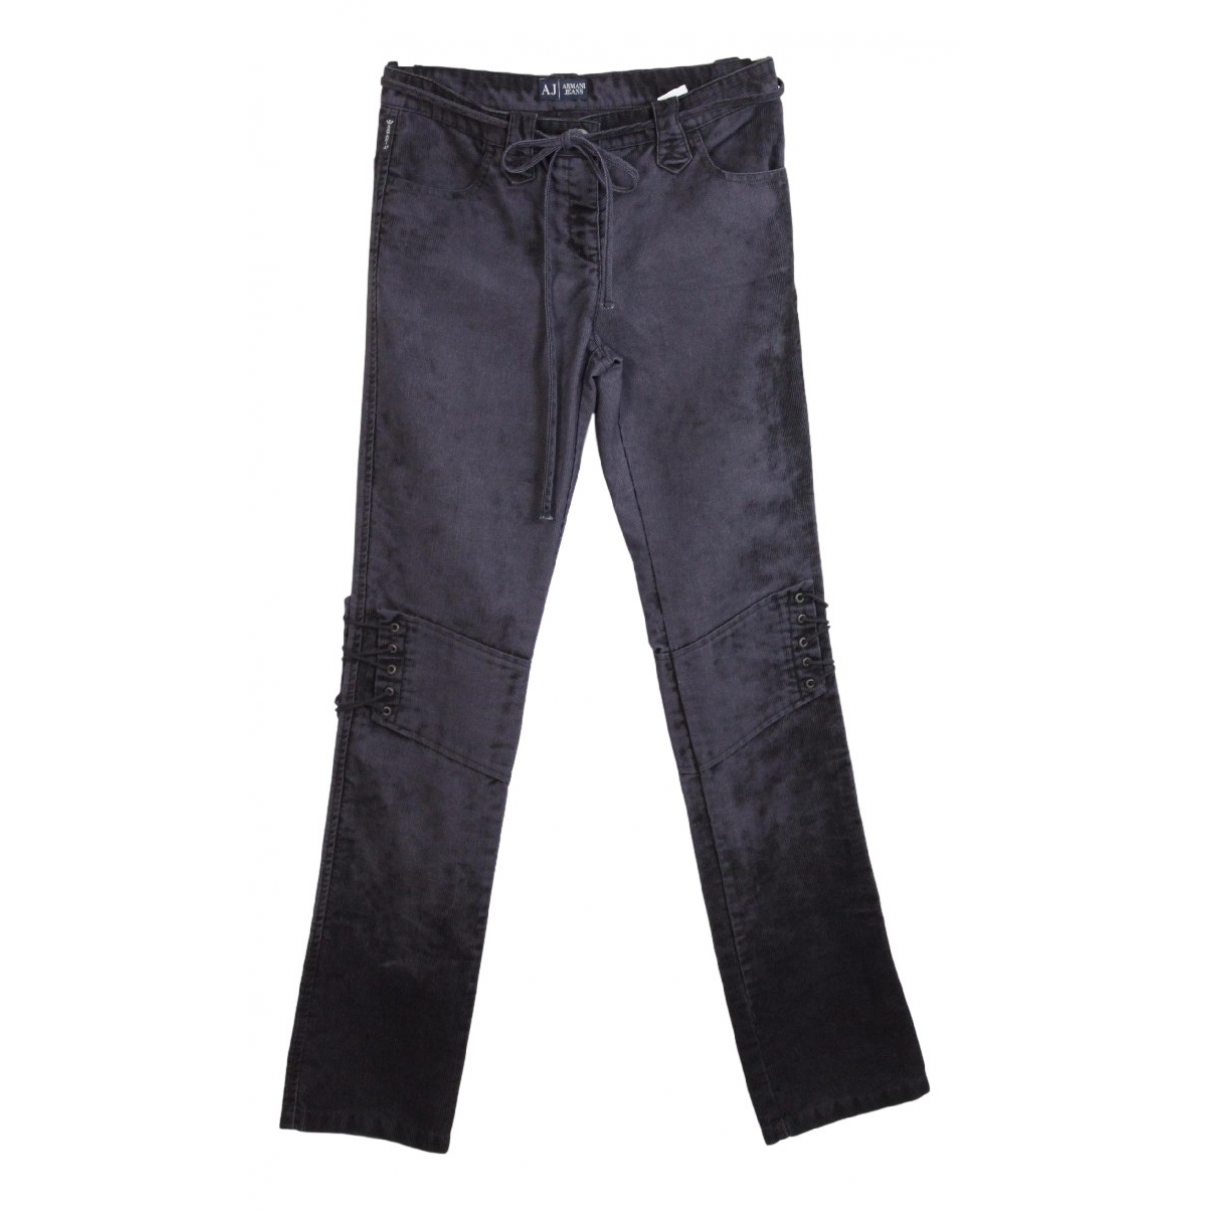 Armani Jeans N Black Cotton Trousers for Women 42 IT